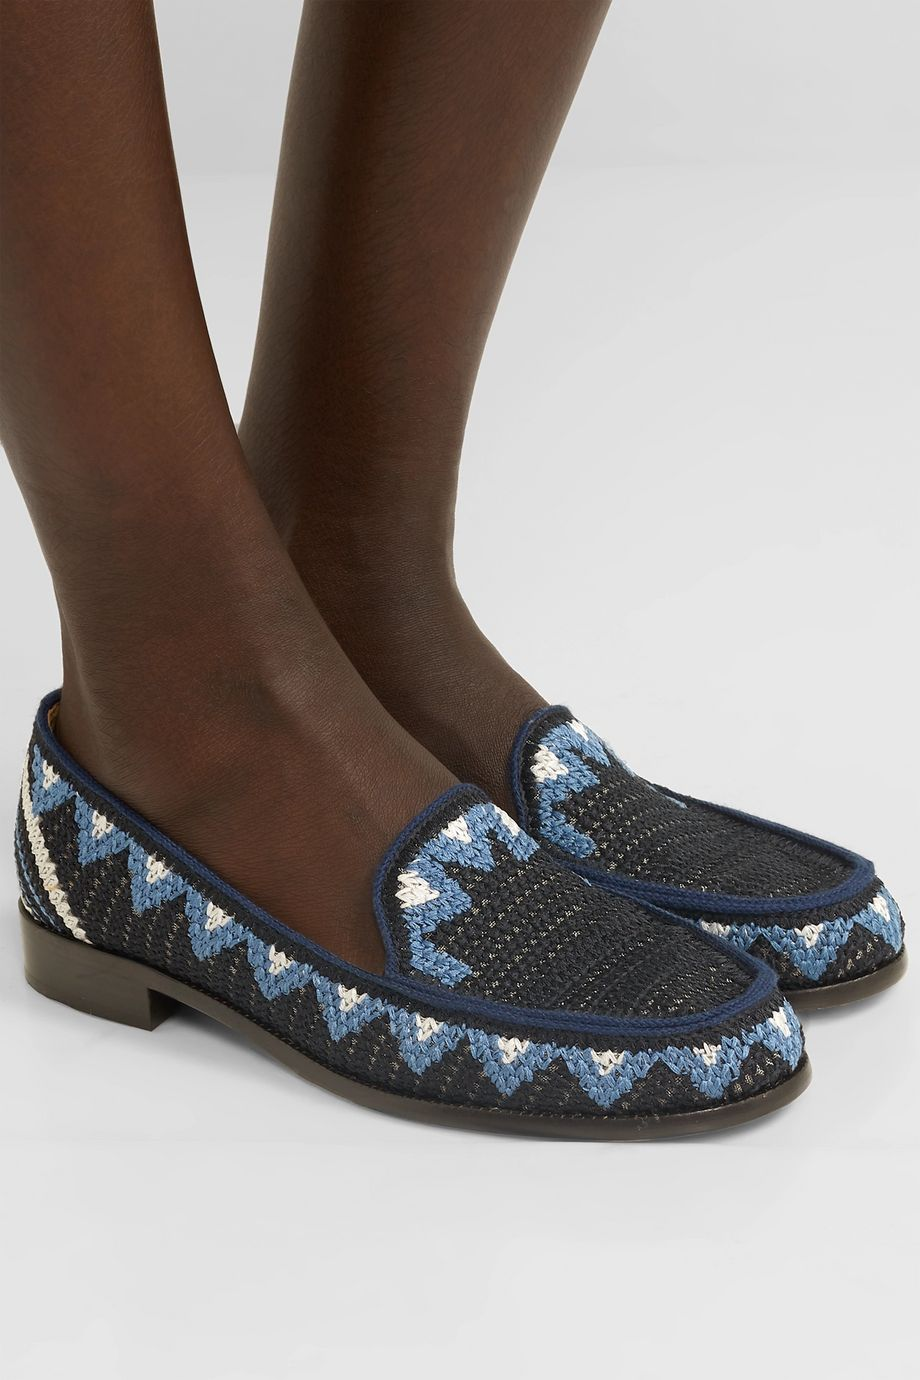 Tabitha Simmons Blakie Sol crocheted loafers